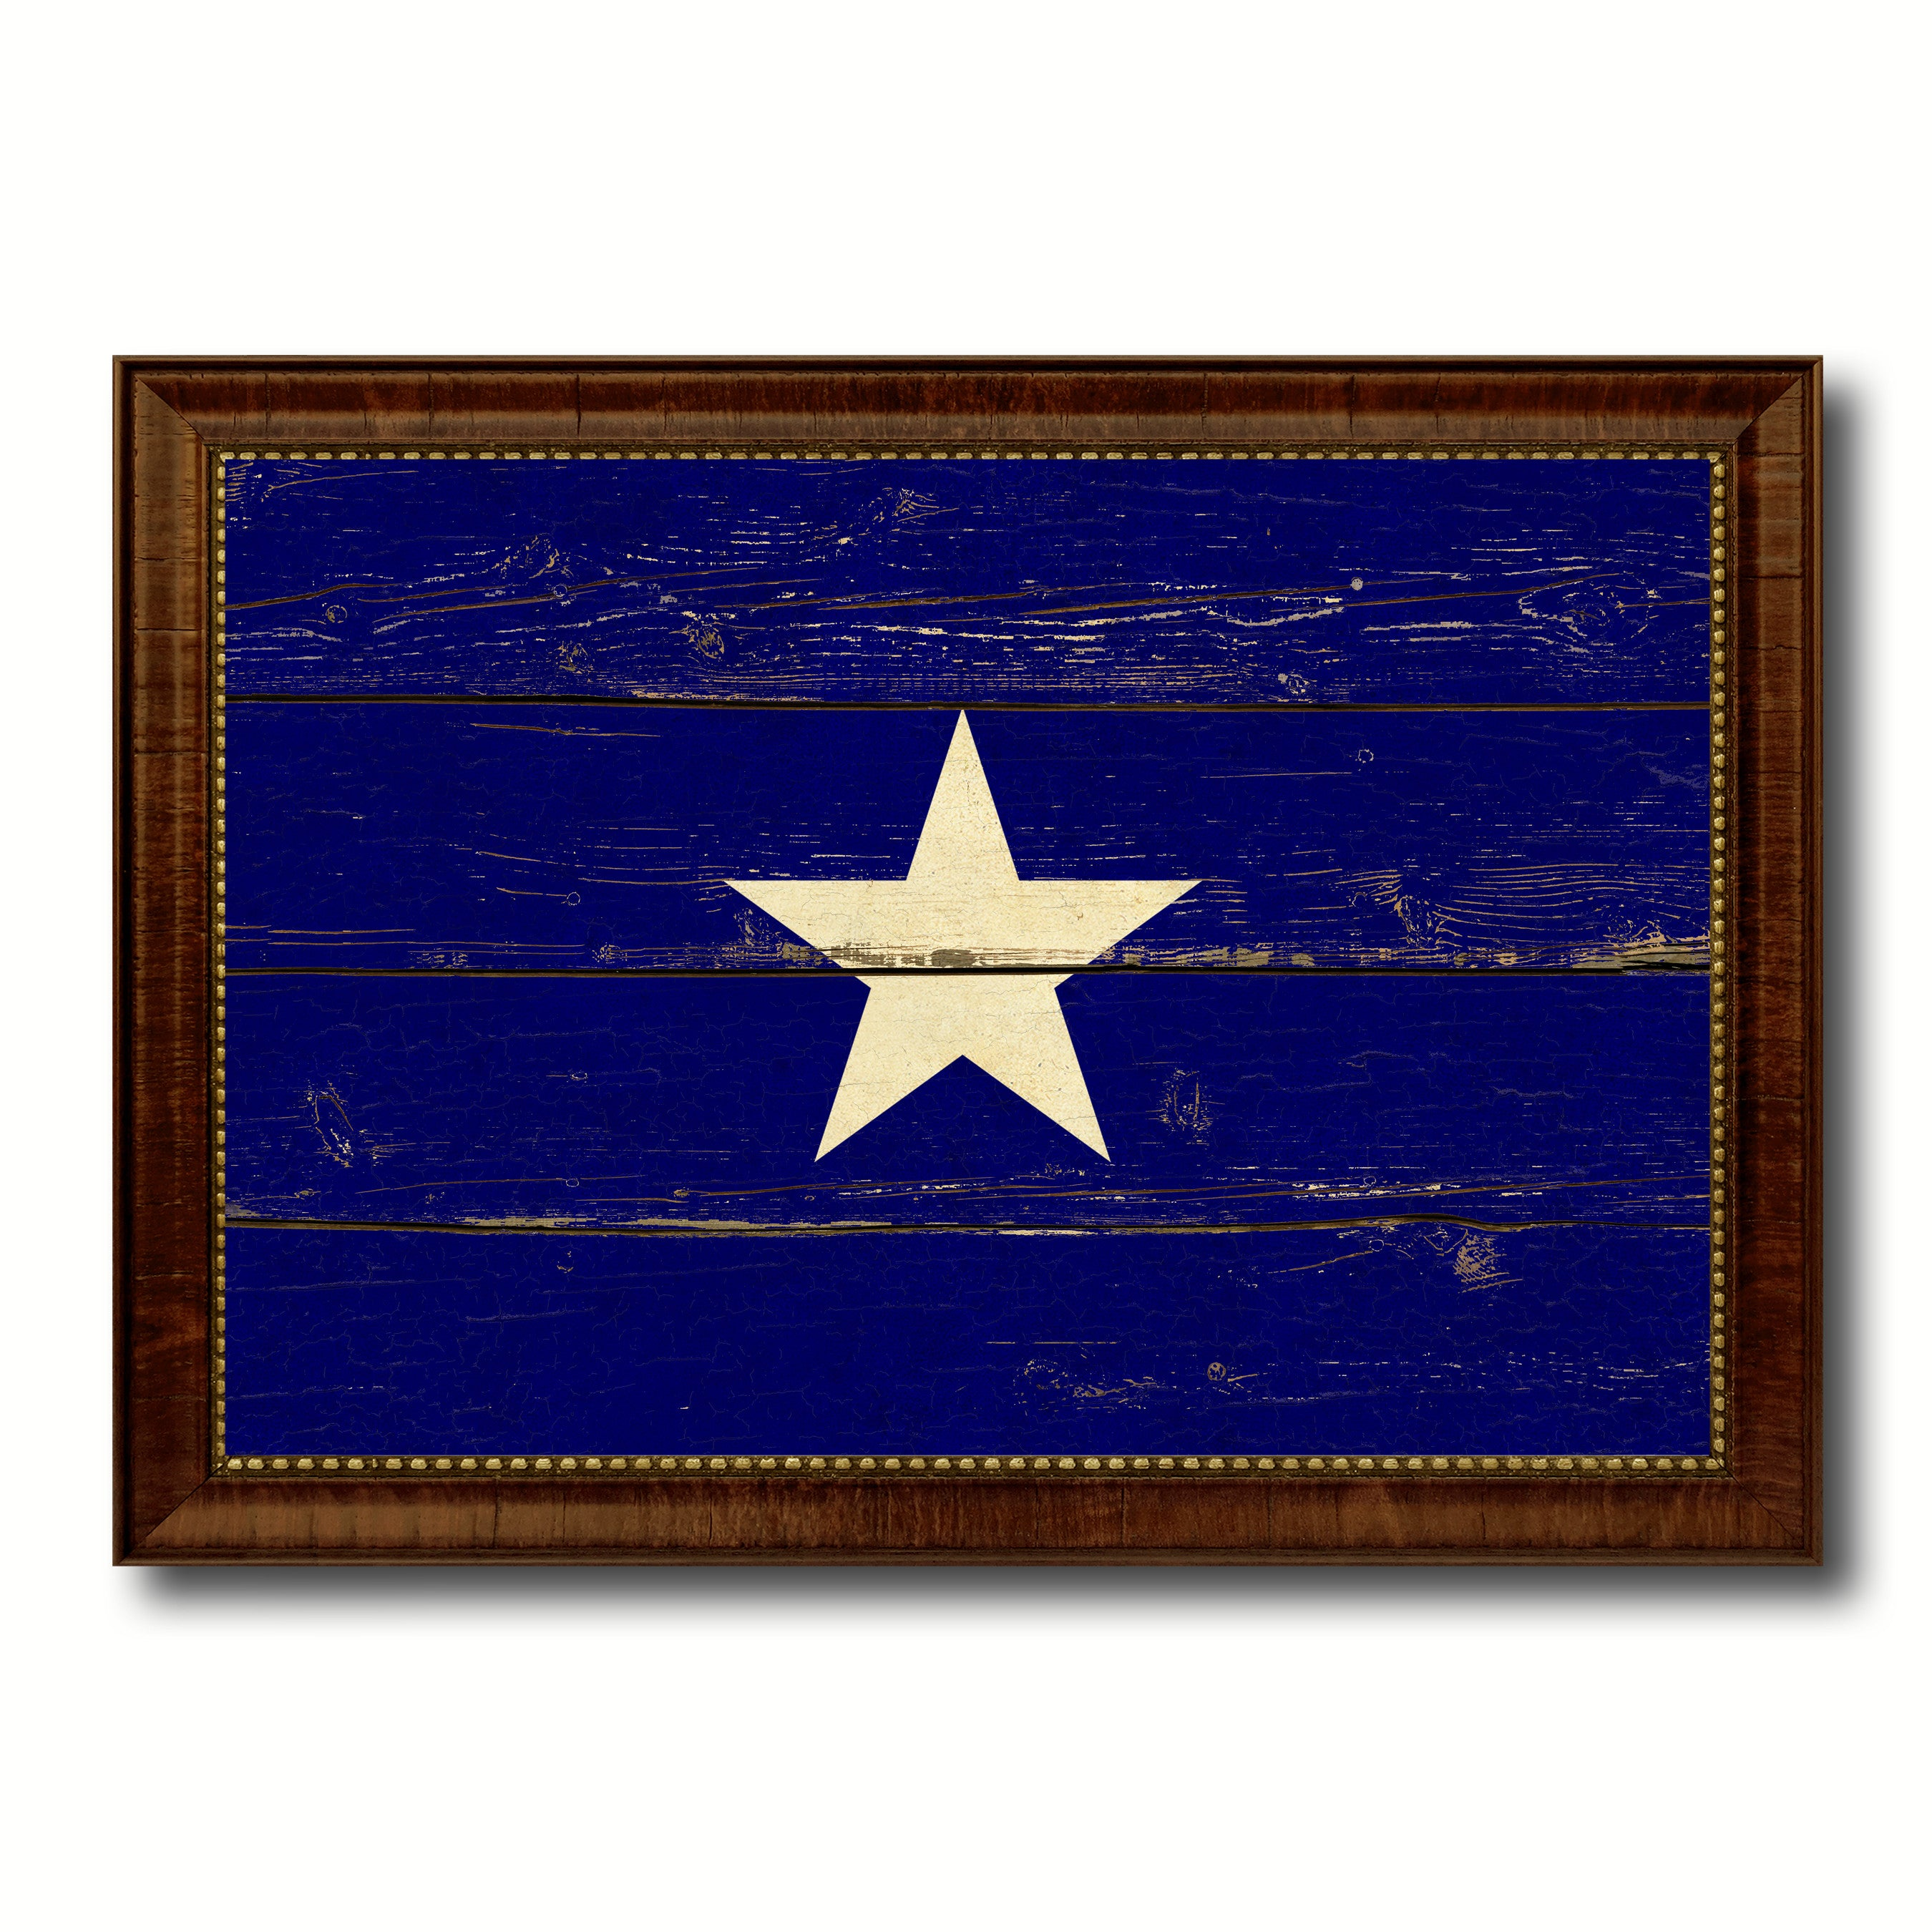 Bonnie Blue in Republic of West Florida Military Flag Vintage Canvas Print with Brown Picture Frame Gifts Ideas Home Decor Wall Art Decoration